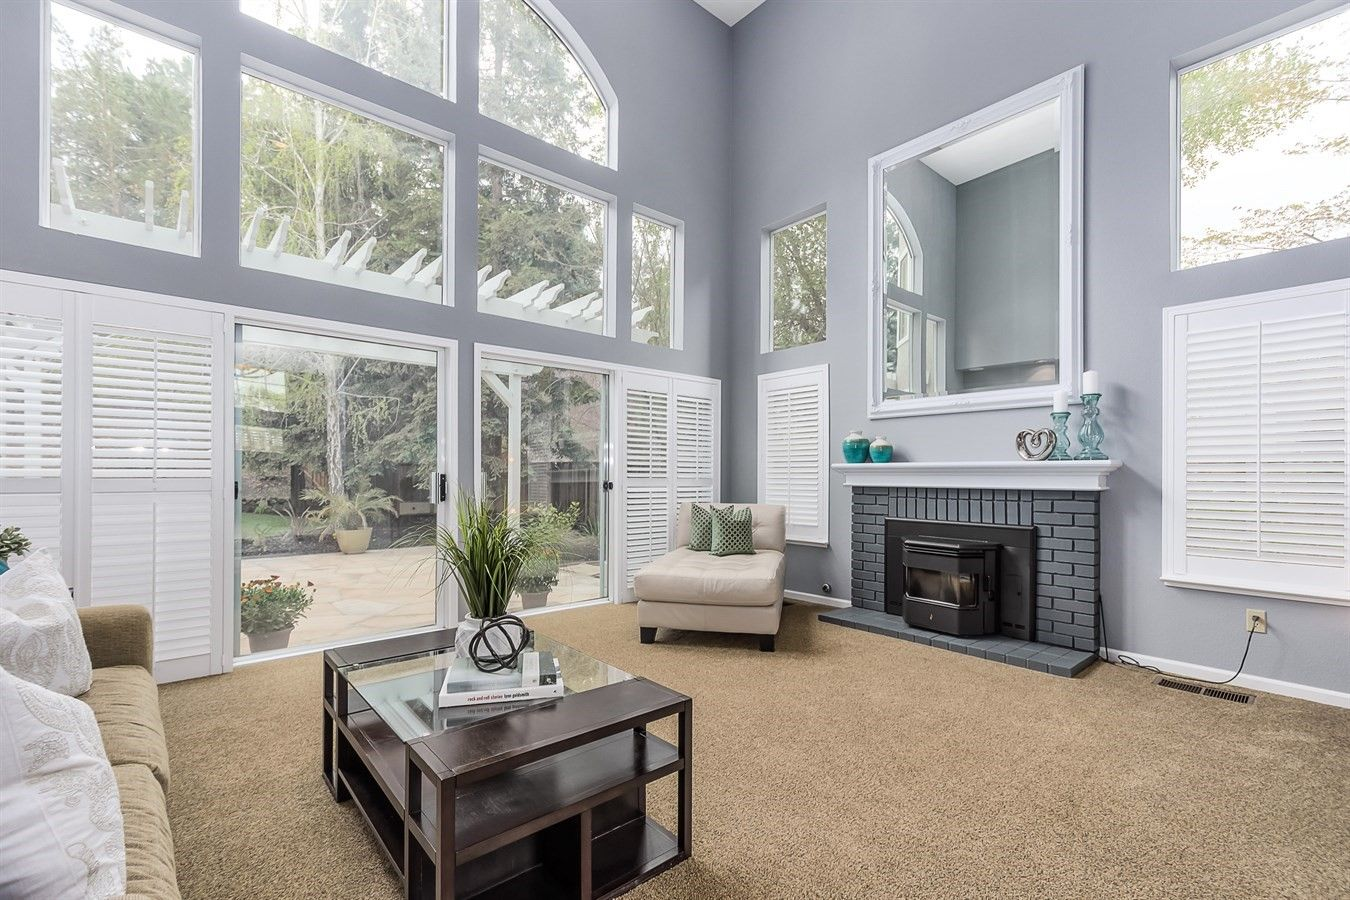 Zen Living Room With Fireplace And Patio Access Design